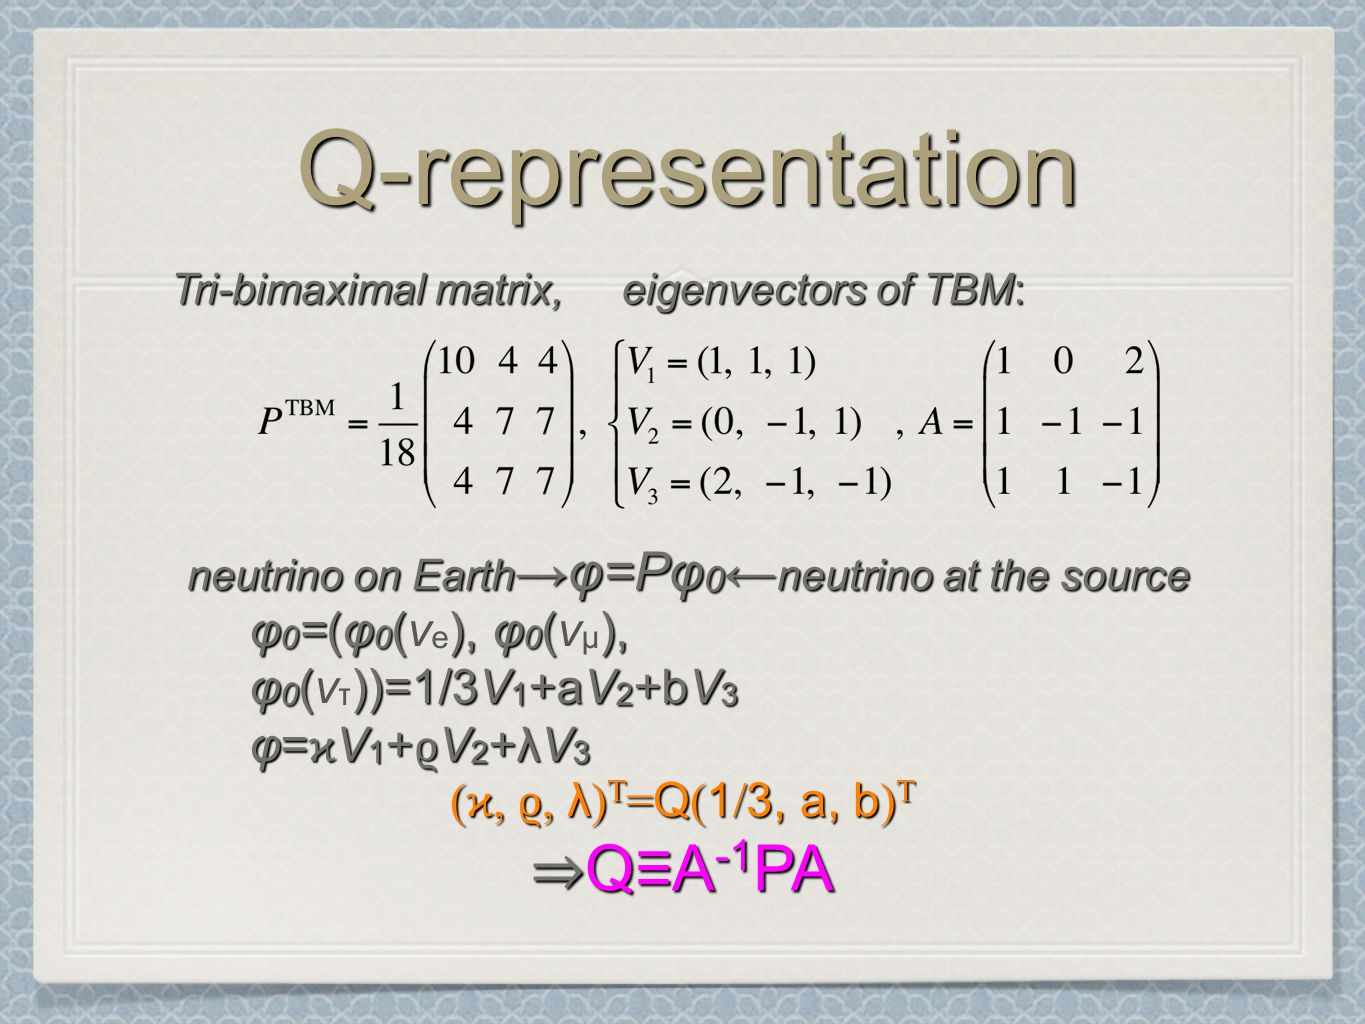 Q-representationQ-representation neutrino on Earth →φ=Pφ 0 ← neutrino at the source φ 0 =(φ 0 (), φ 0 (), φ 0 ())=1/3V 1 +aV 2 +bV 3 φ 0 =(φ 0 (ν e ), φ 0 (ν μ ), φ 0 (ν τ ))=1/3V 1 +aV 2 +bV 3 φ= ϰ V 1 + ϱ V 2 +λV 3 ( ϰ, ϱ, λ ) T = Q ( 1 / 3, a, b ) T ⇒ Q≡A -1 PA Tri-bimaximal matrix, eigenvectors of TBM: